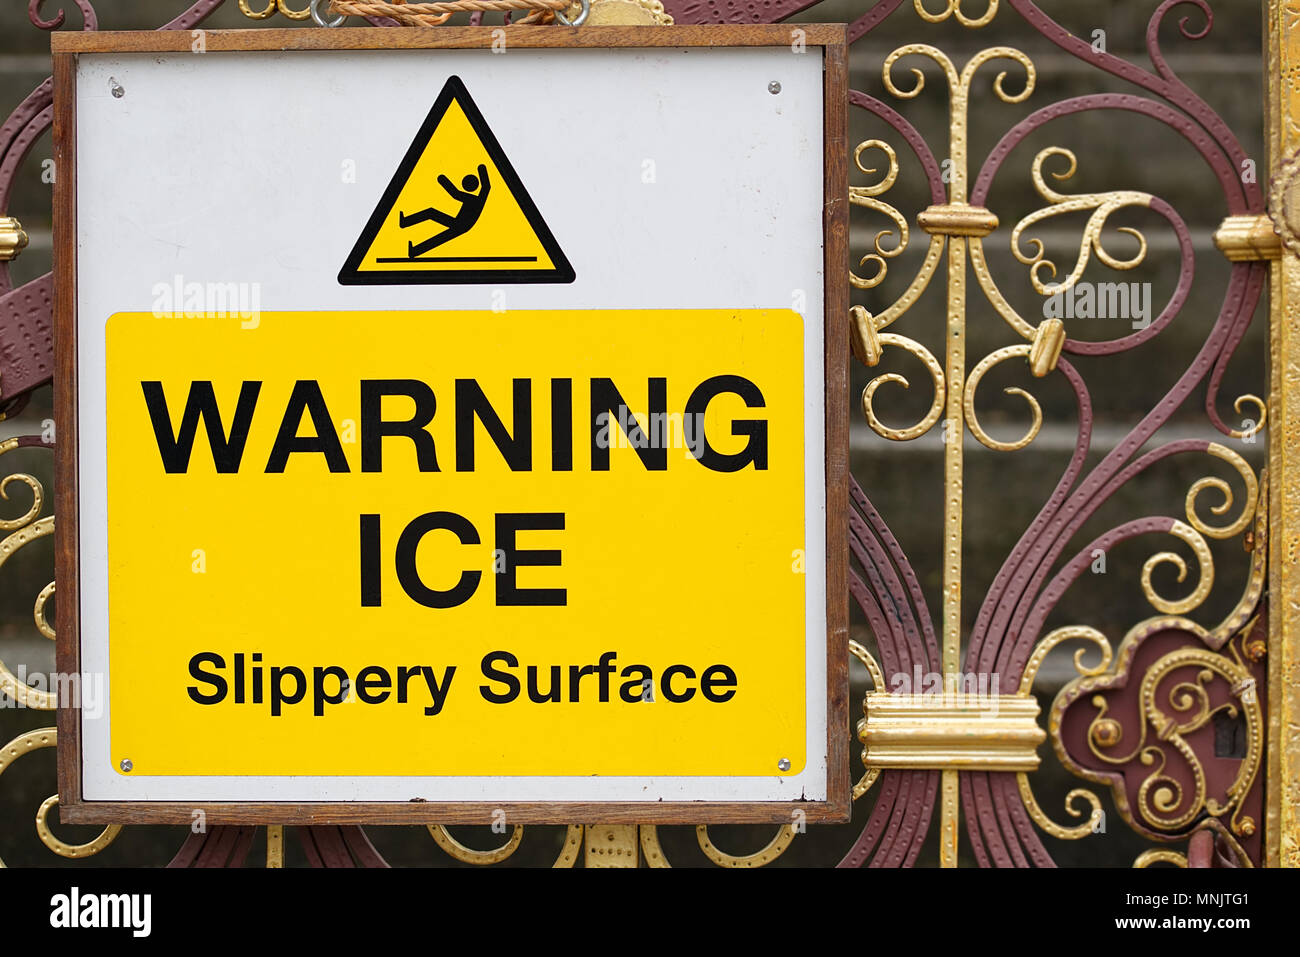 Warning ice slippery surface sign black text on yellow and white background with symbol of a man slipping on ice on ornate iron gates. Winter freezing - Stock Image